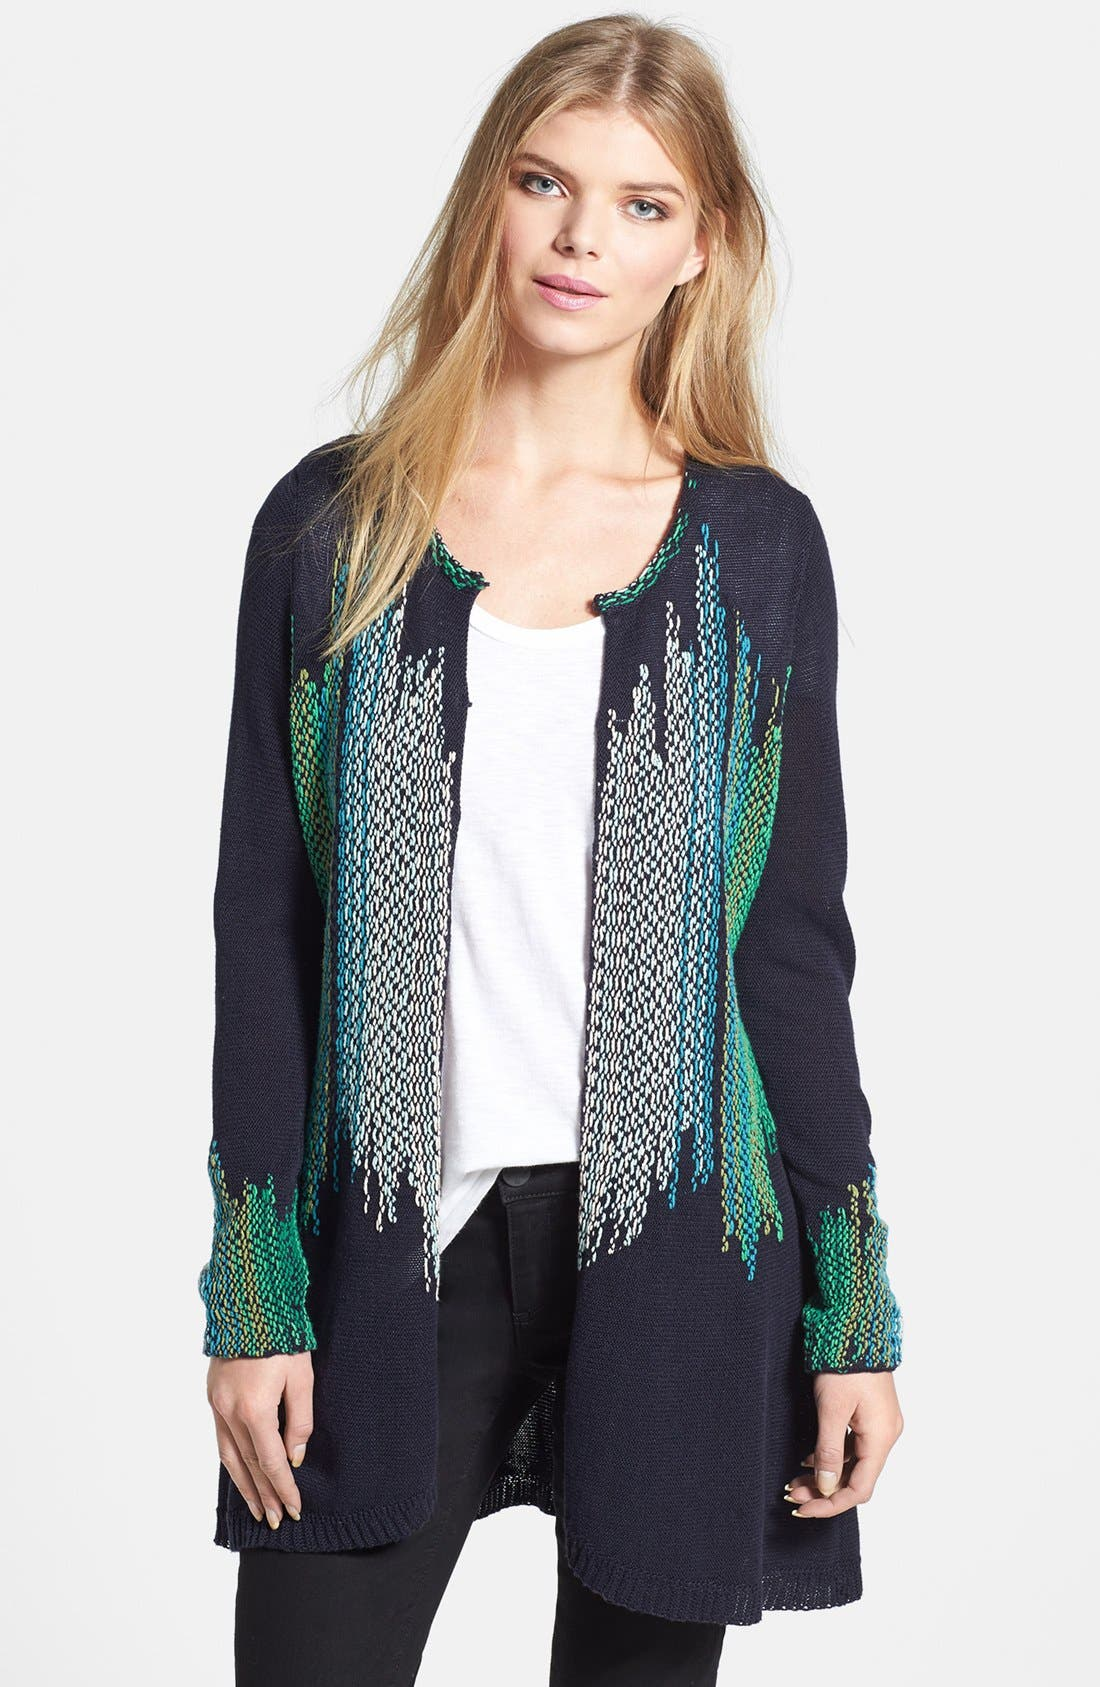 Alternate Image 1 Selected - NIC+ZOE 'Color Weave' Cardigan